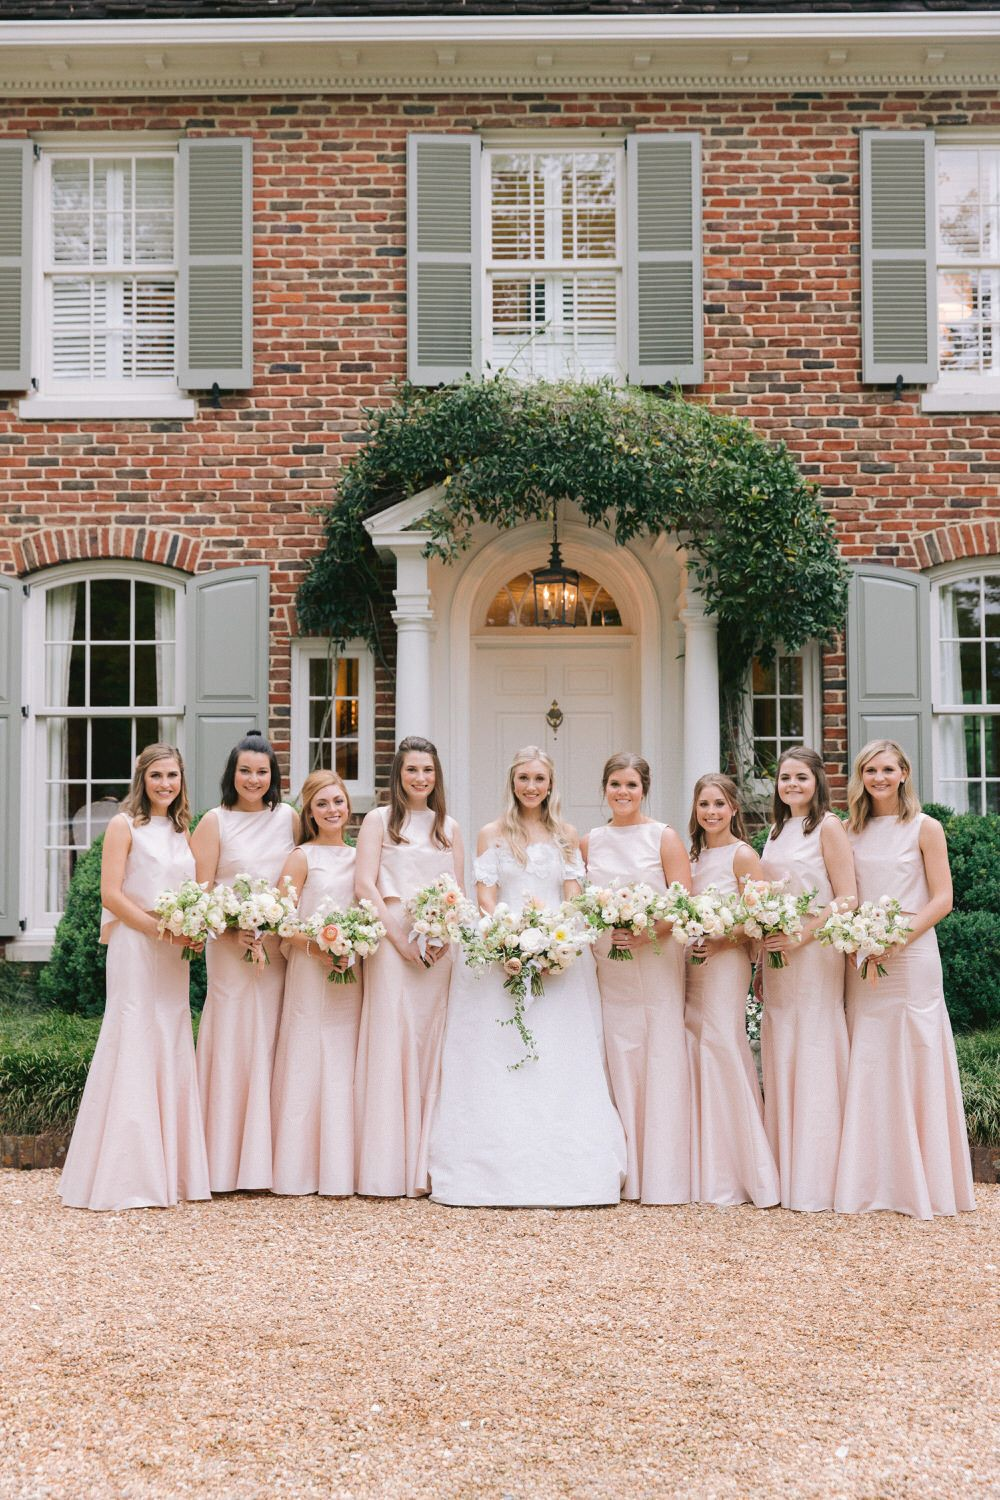 bride with her bridesmaids in floor length blush dresses | Birmingham wedding inspiration |  #bridesmaidbouquets